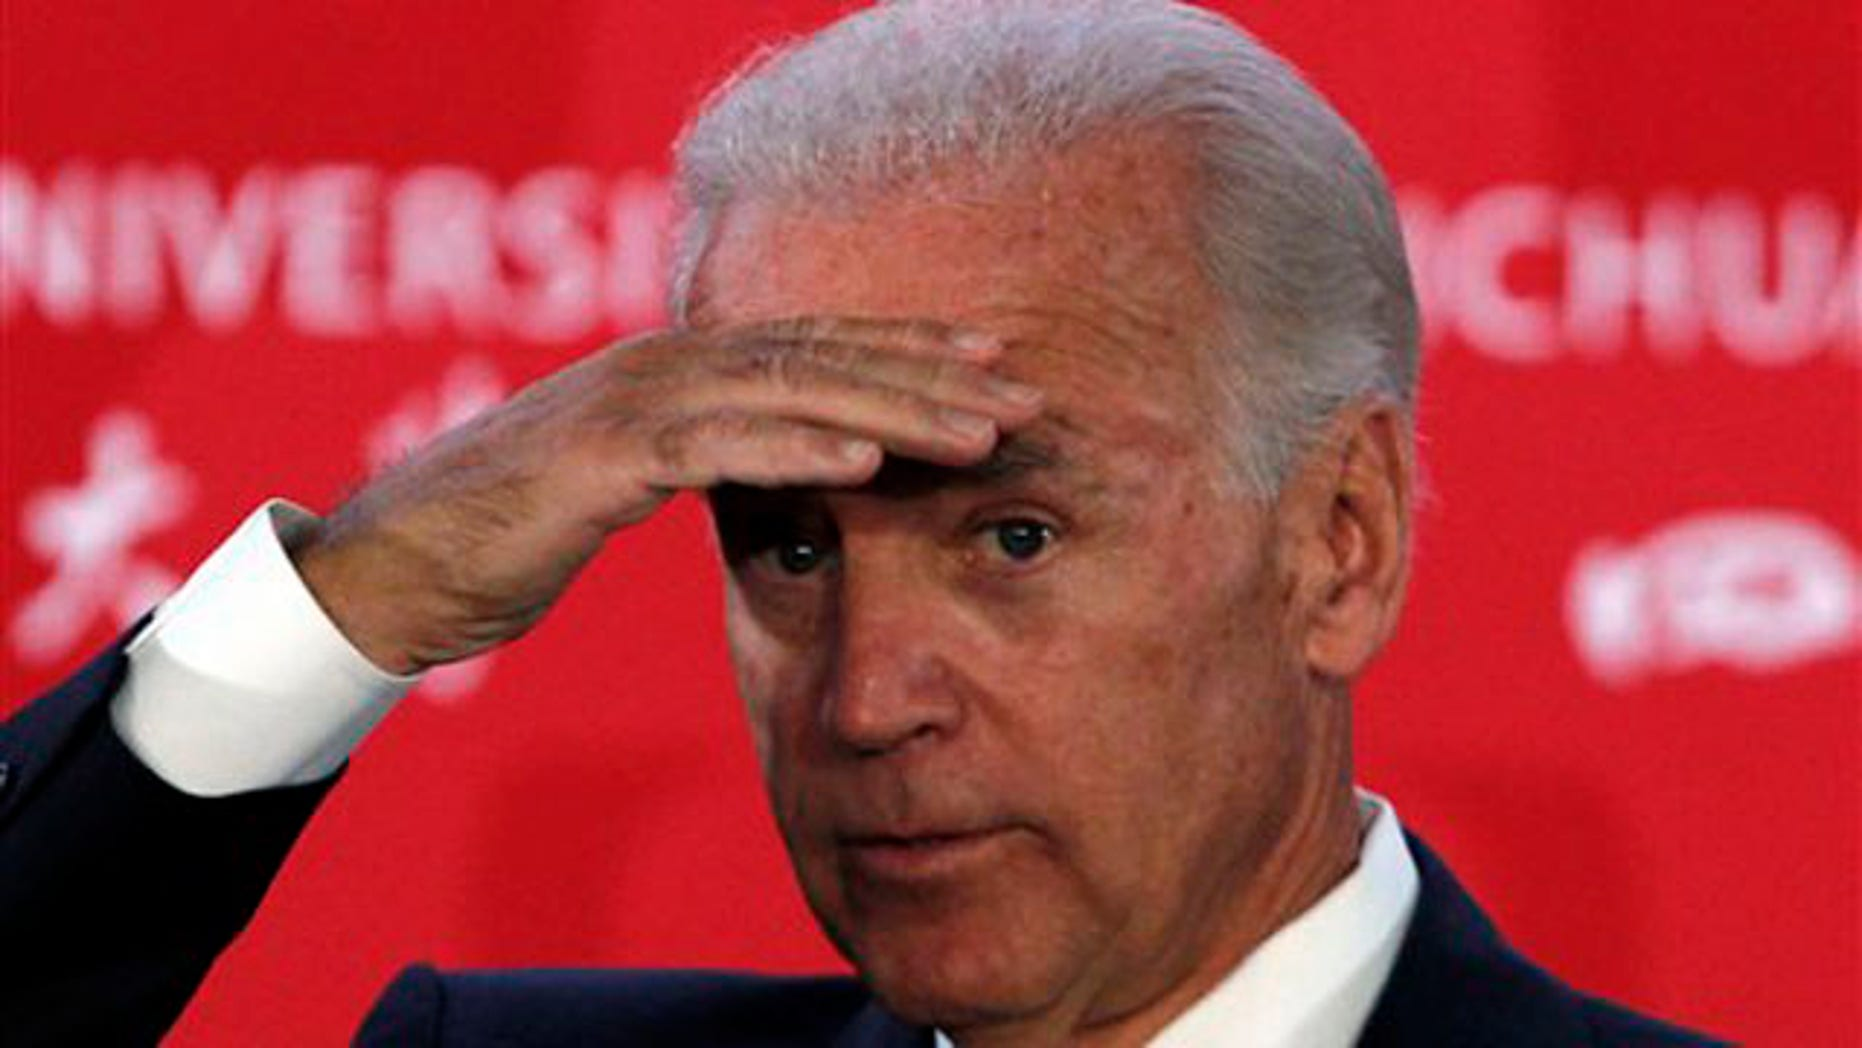 Vice President Biden looks for questions from audience members after delivering a speech at Sichuan University in Chengdu in southwestern China Aug. 21.